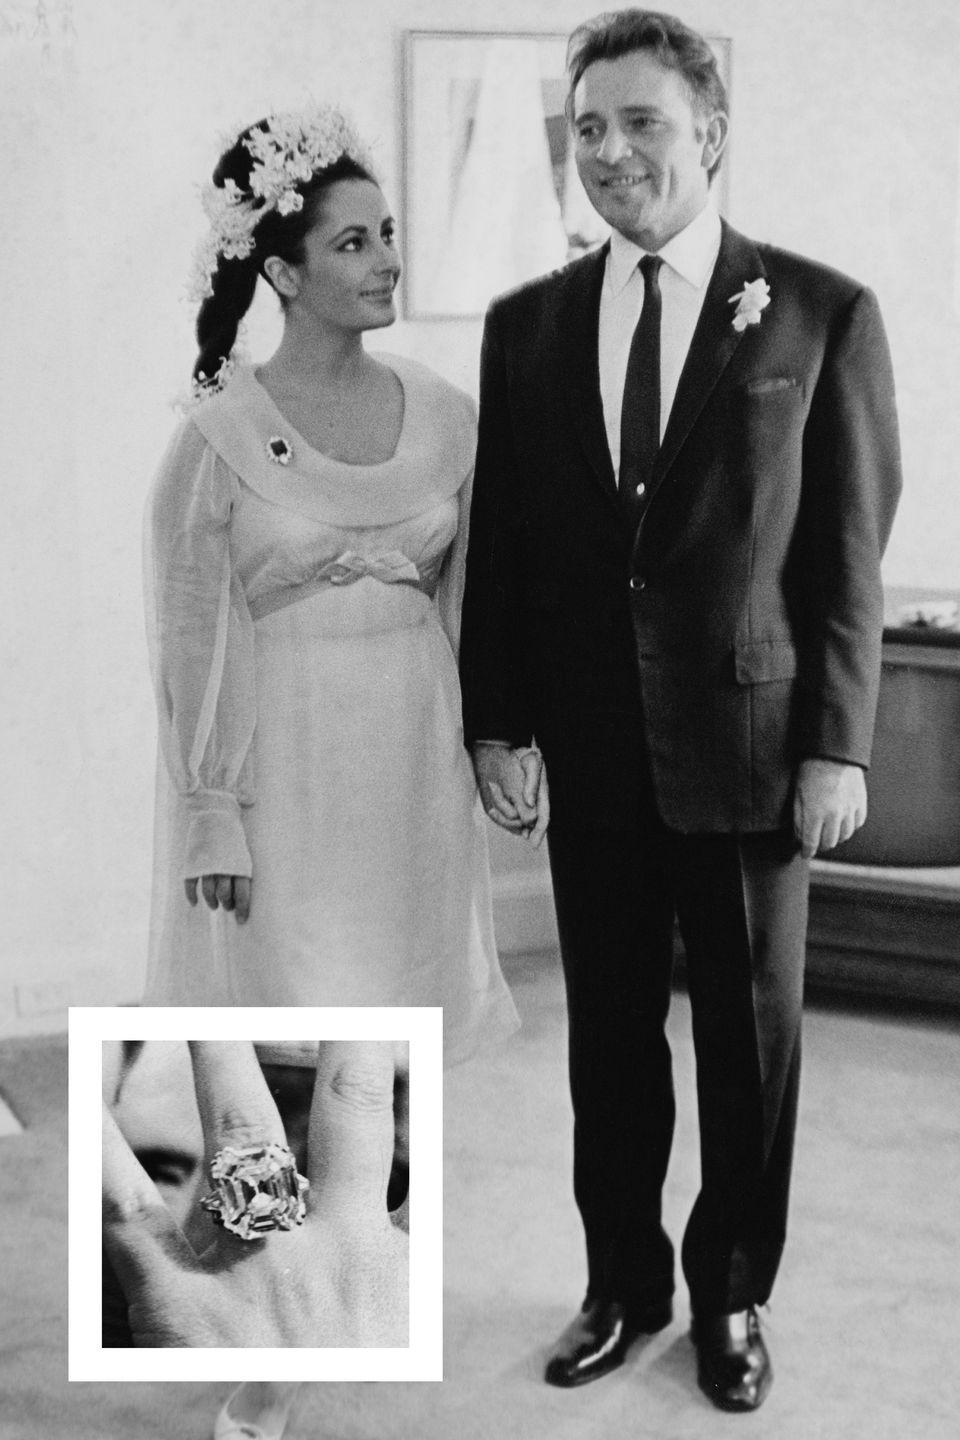 """<p>Taylor and Richard Burton <a href=""""https://www.townandcountrymag.com/leisure/arts-and-culture/g2086/elizabeth-taylor-and-richard-burton-love-story/"""" rel=""""nofollow noopener"""" target=""""_blank"""" data-ylk=""""slk:started their decades-long love affair"""" class=""""link rapid-noclick-resp"""">started their decades-long love affair</a> in 1962. Burton lavished Taylor with incredible pieces of jewelry during their relationship, including the Elizabeth Taylor Diamond, which was formerly known as the Krupp diamond. Burton purchased the 33-carat Asscher-cut potentially flawless diamond ring for Taylor in 1968. While not technically an engagement ring, Taylor wore it nearly every day, and it was sold <a href=""""http://www.christies.com/lotfinder/Jewelry/the-elizabeth-taylor-diamonda-diamond-ring-5507955-details.aspx"""" rel=""""nofollow noopener"""" target=""""_blank"""" data-ylk=""""slk:at a Christie's auction"""" class=""""link rapid-noclick-resp"""">at a Christie's auction</a> in December 2011 for $8.8 million, <a href=""""https://www.forbes.com/sites/hannahelliott/2011/12/14/elizabeth-taylor-diamonds-fetch-record-prices-at-auction/#699496a74e48"""" rel=""""nofollow noopener"""" target=""""_blank"""" data-ylk=""""slk:Forbes reports."""" class=""""link rapid-noclick-resp""""><em>Forbes </em>reports.</a></p>"""